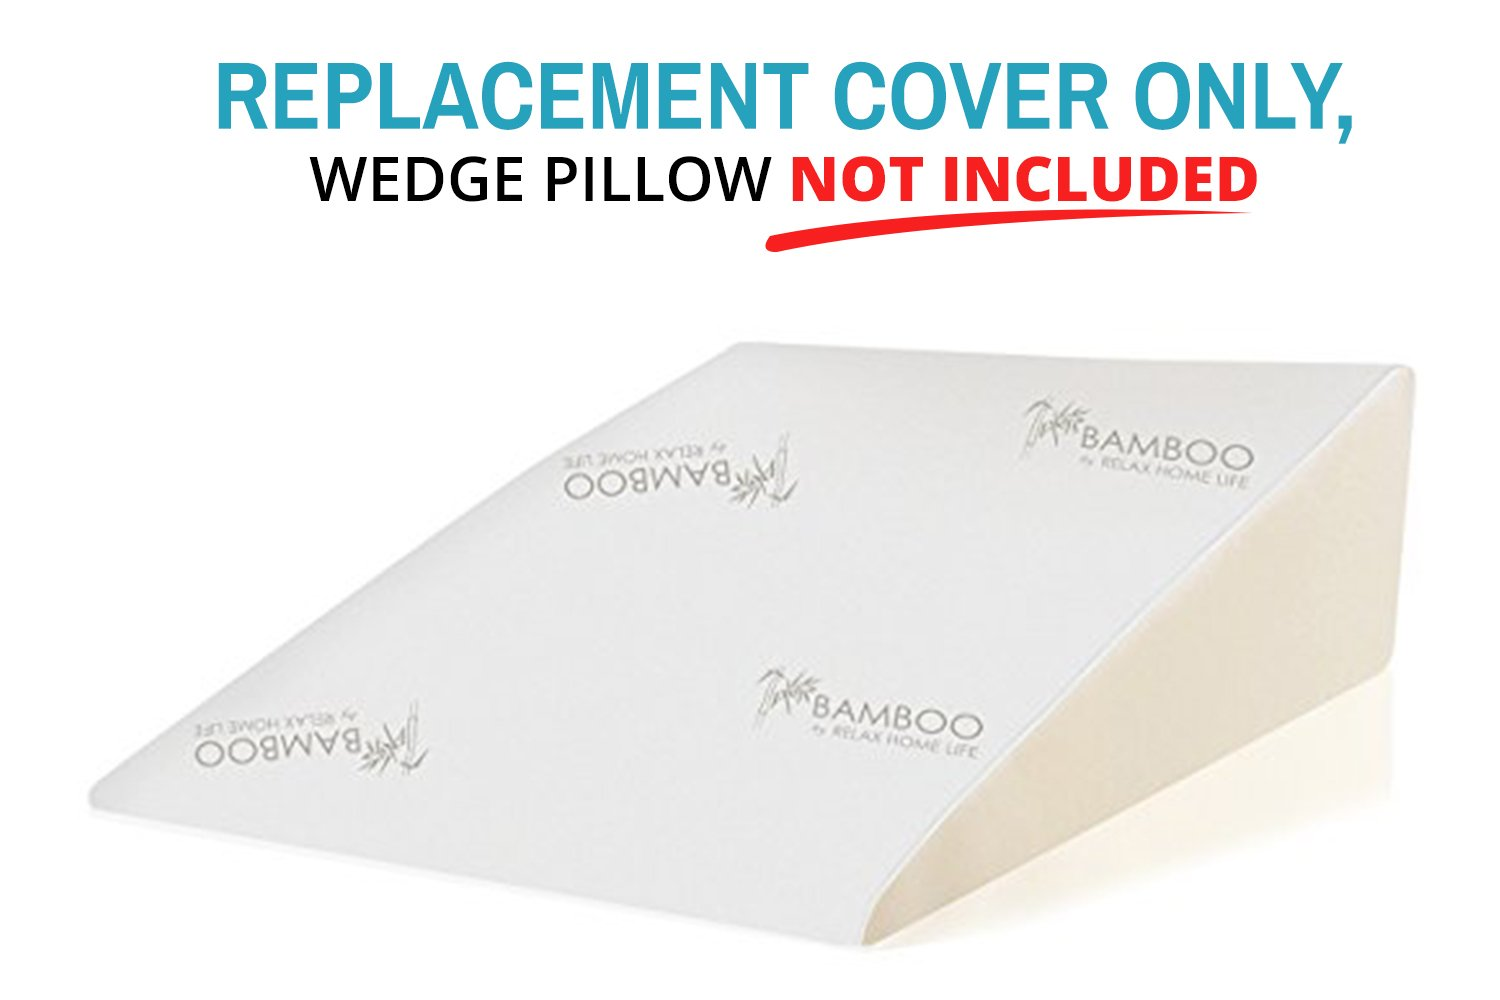 Relax Home Life - Foam Bed Wedge Bamboo Pillow (25''L x 25''W x 12''H) Replacement Cover ONLY - Designed to Fit Only Relax Home Life Wedge Pillows (25''L x 25''W x 12''H)